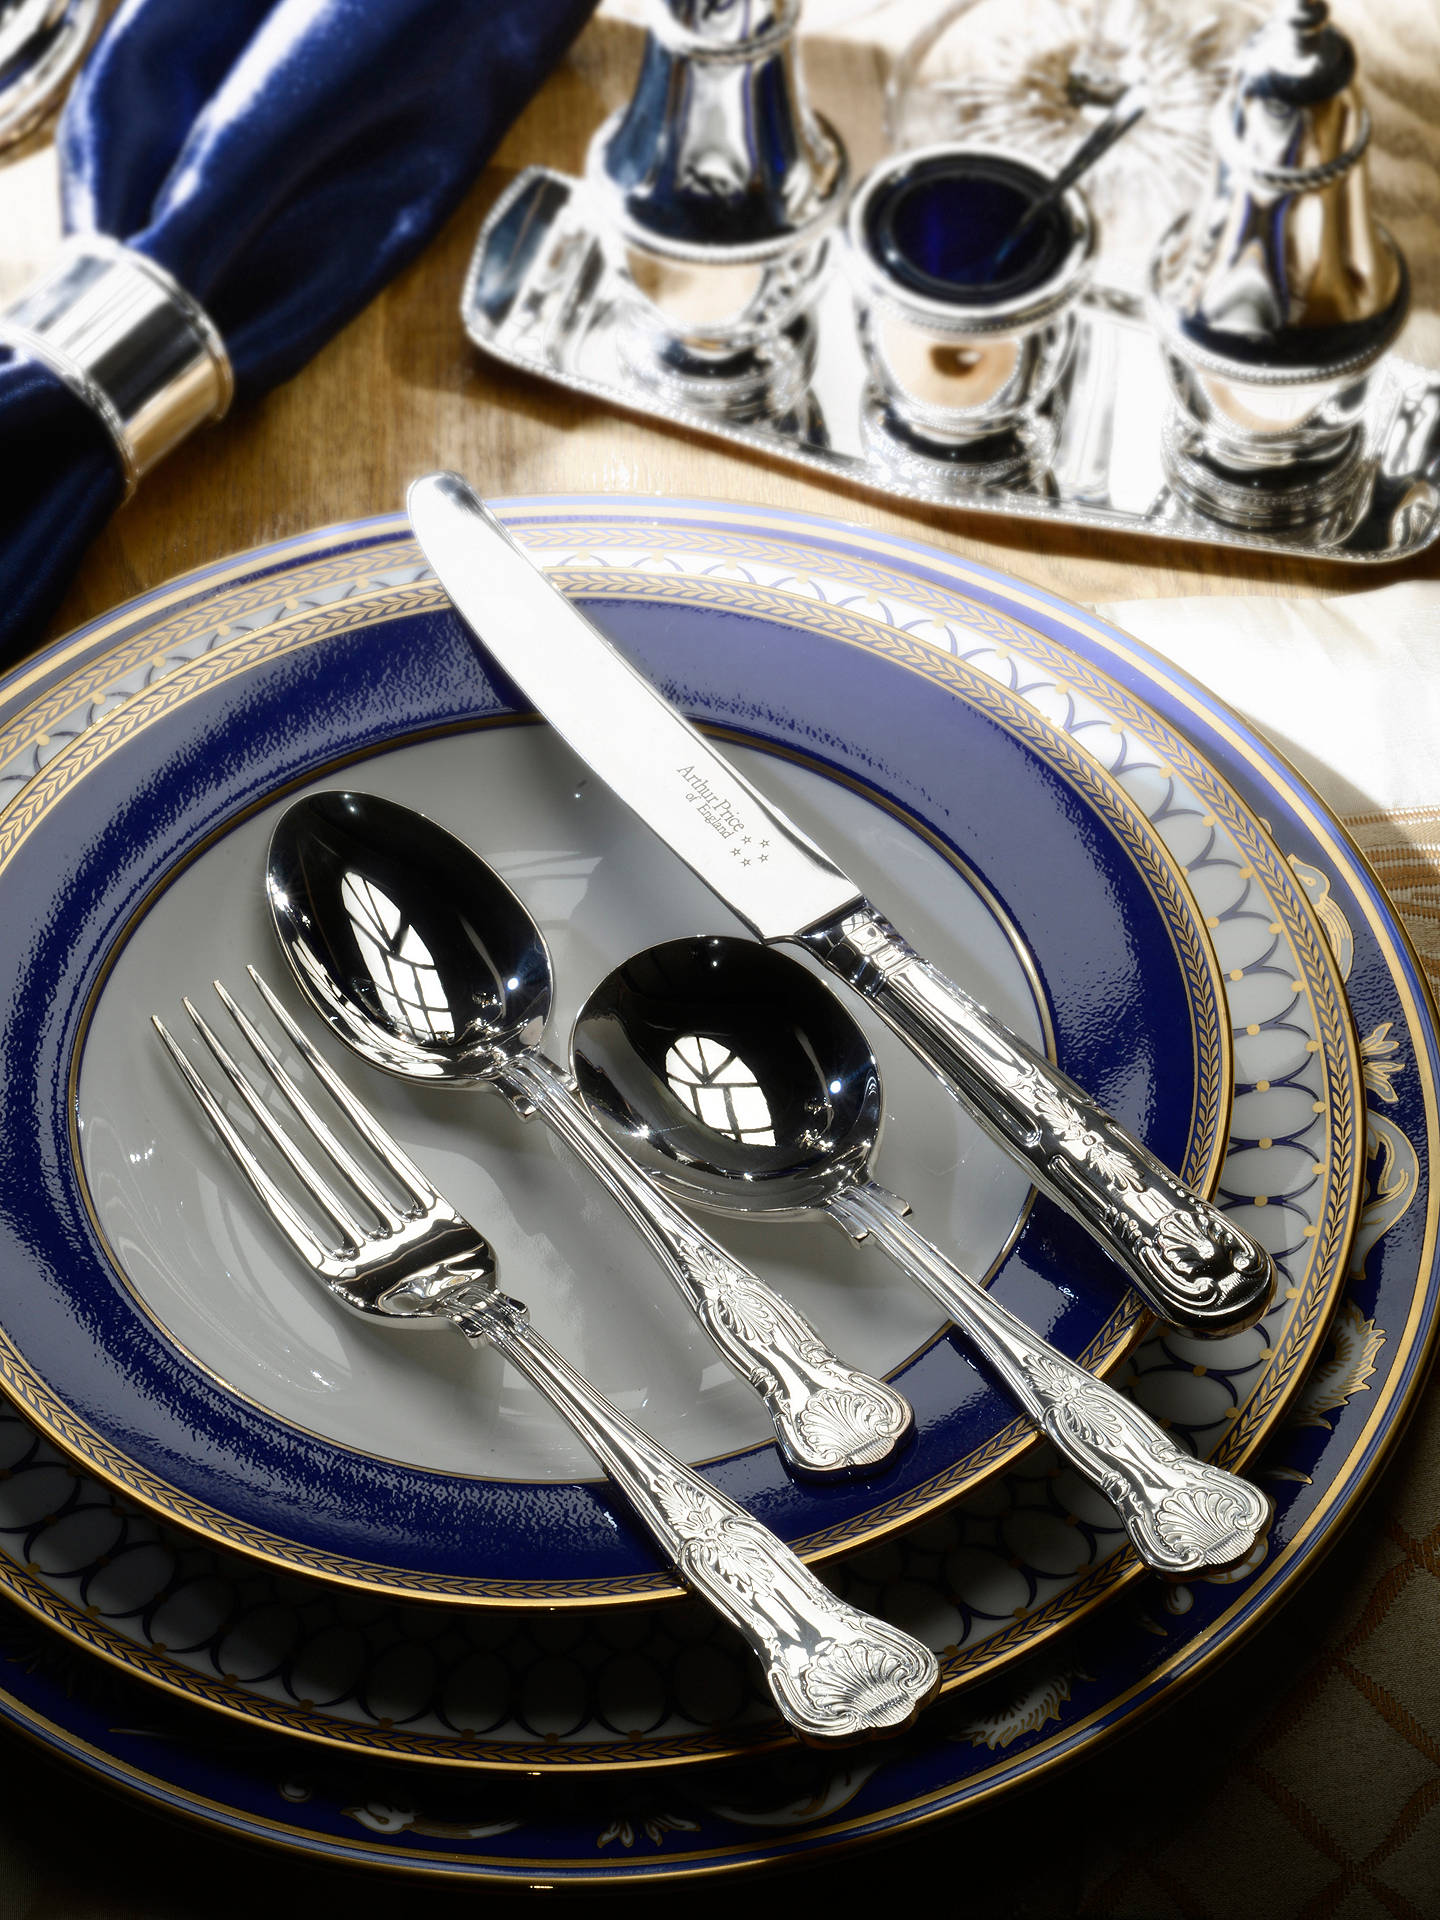 Buy Arthur Price Kings Cutlery Canteen, Sovereign Silver Plated, 44 Piece Online at johnlewis.com